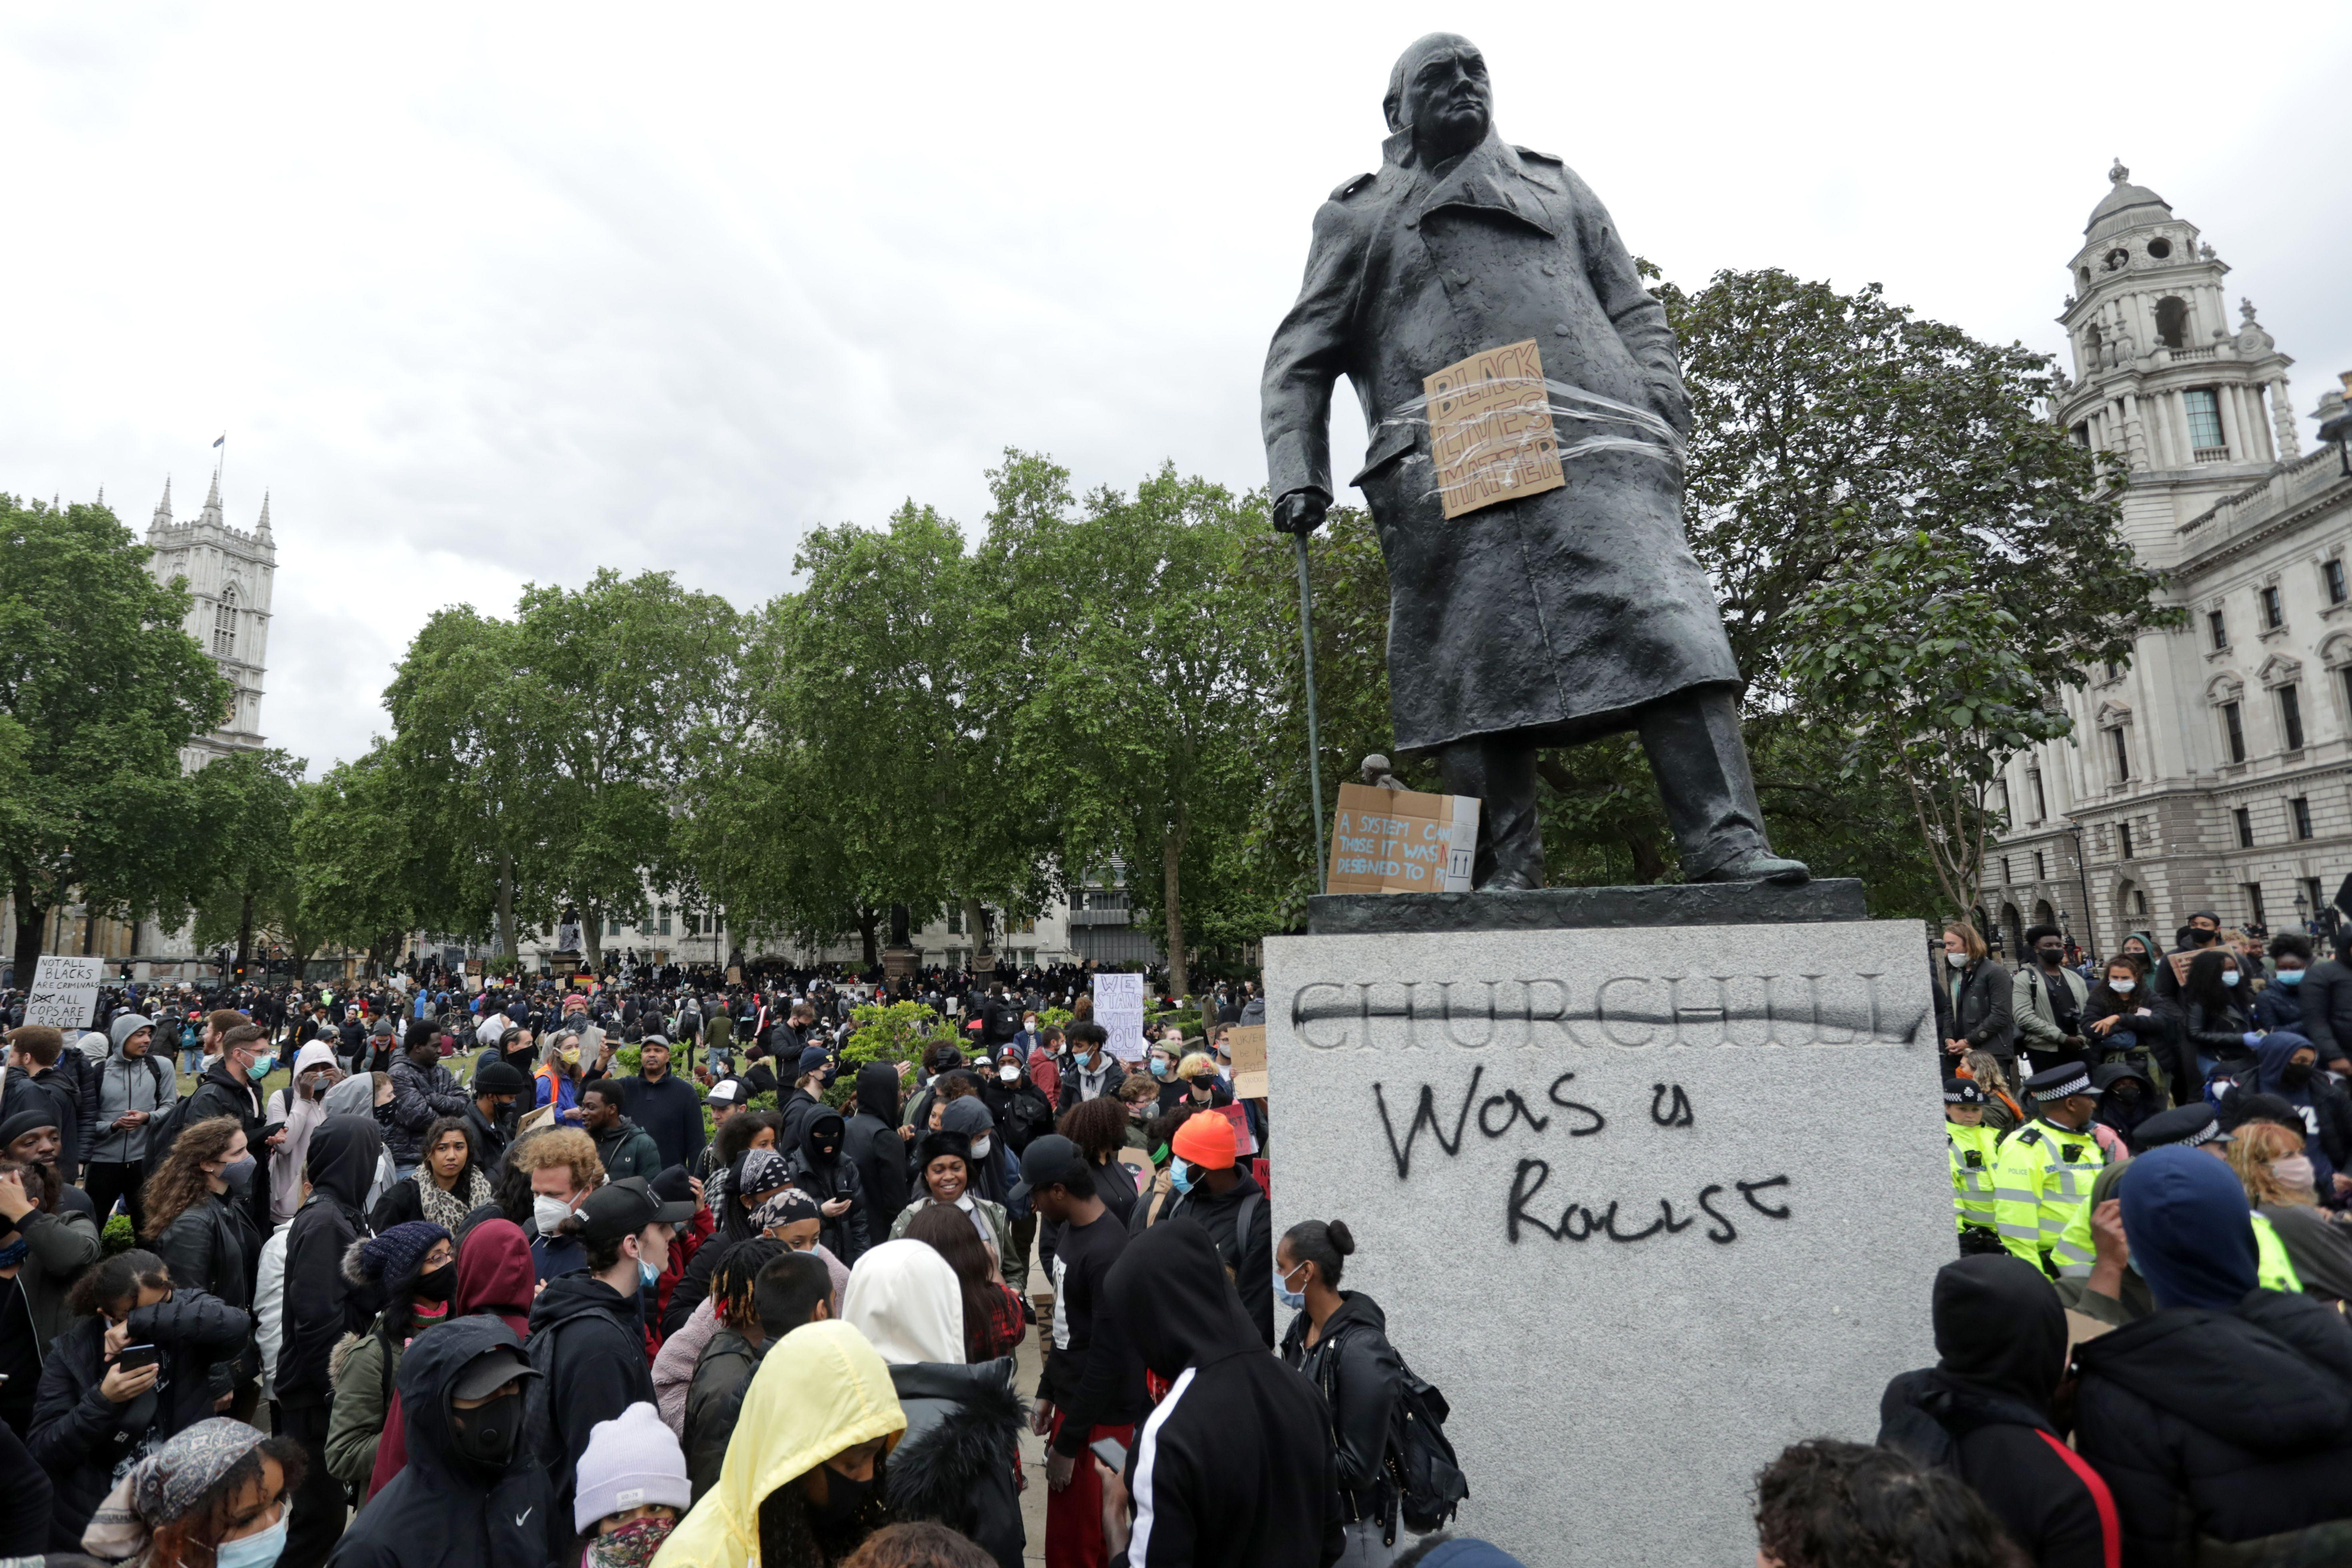 "TOPSHOT - The statue of former British prime minister Winston Churchill is seen defaced, with the words (Churchill) ""was a racist"" written on it's base in Parliament Square, central London after a demonstration outside the US Embassy, on June 7, 2020, organised to show solidarity with the Black Lives Matter movement in the wake of the killing of George Floyd, an unarmed black man who died after a police officer knelt on his neck in Minneapolis. - Taking a knee, banging drums and ignoring social distancing measures, outraged protesters from Sydney to London on Saturday kicked off a weekend of global rallies against racism and police brutality. (Photo by ISABEL INFANTES / AFP) (Photo by ISABEL INFANTES/AFP via Getty Images)"